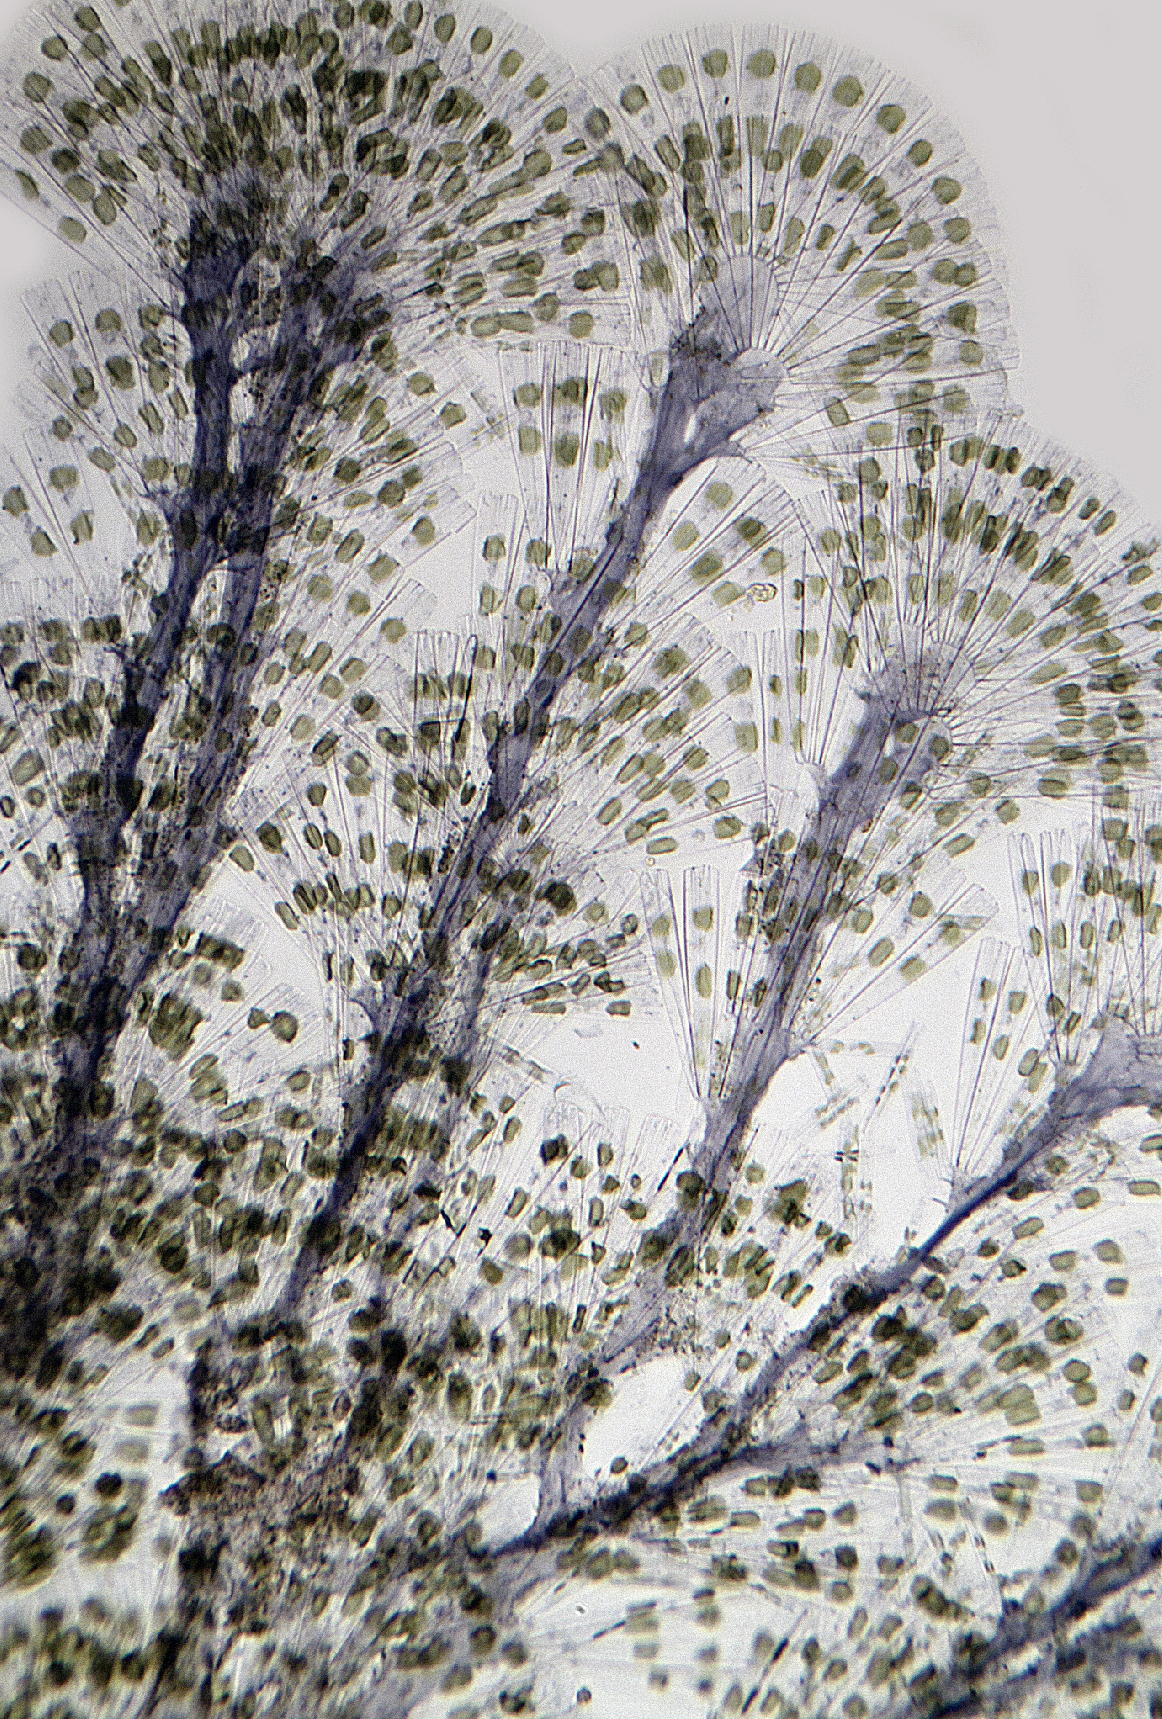 Licmophora Diatoms 1 A.Topping